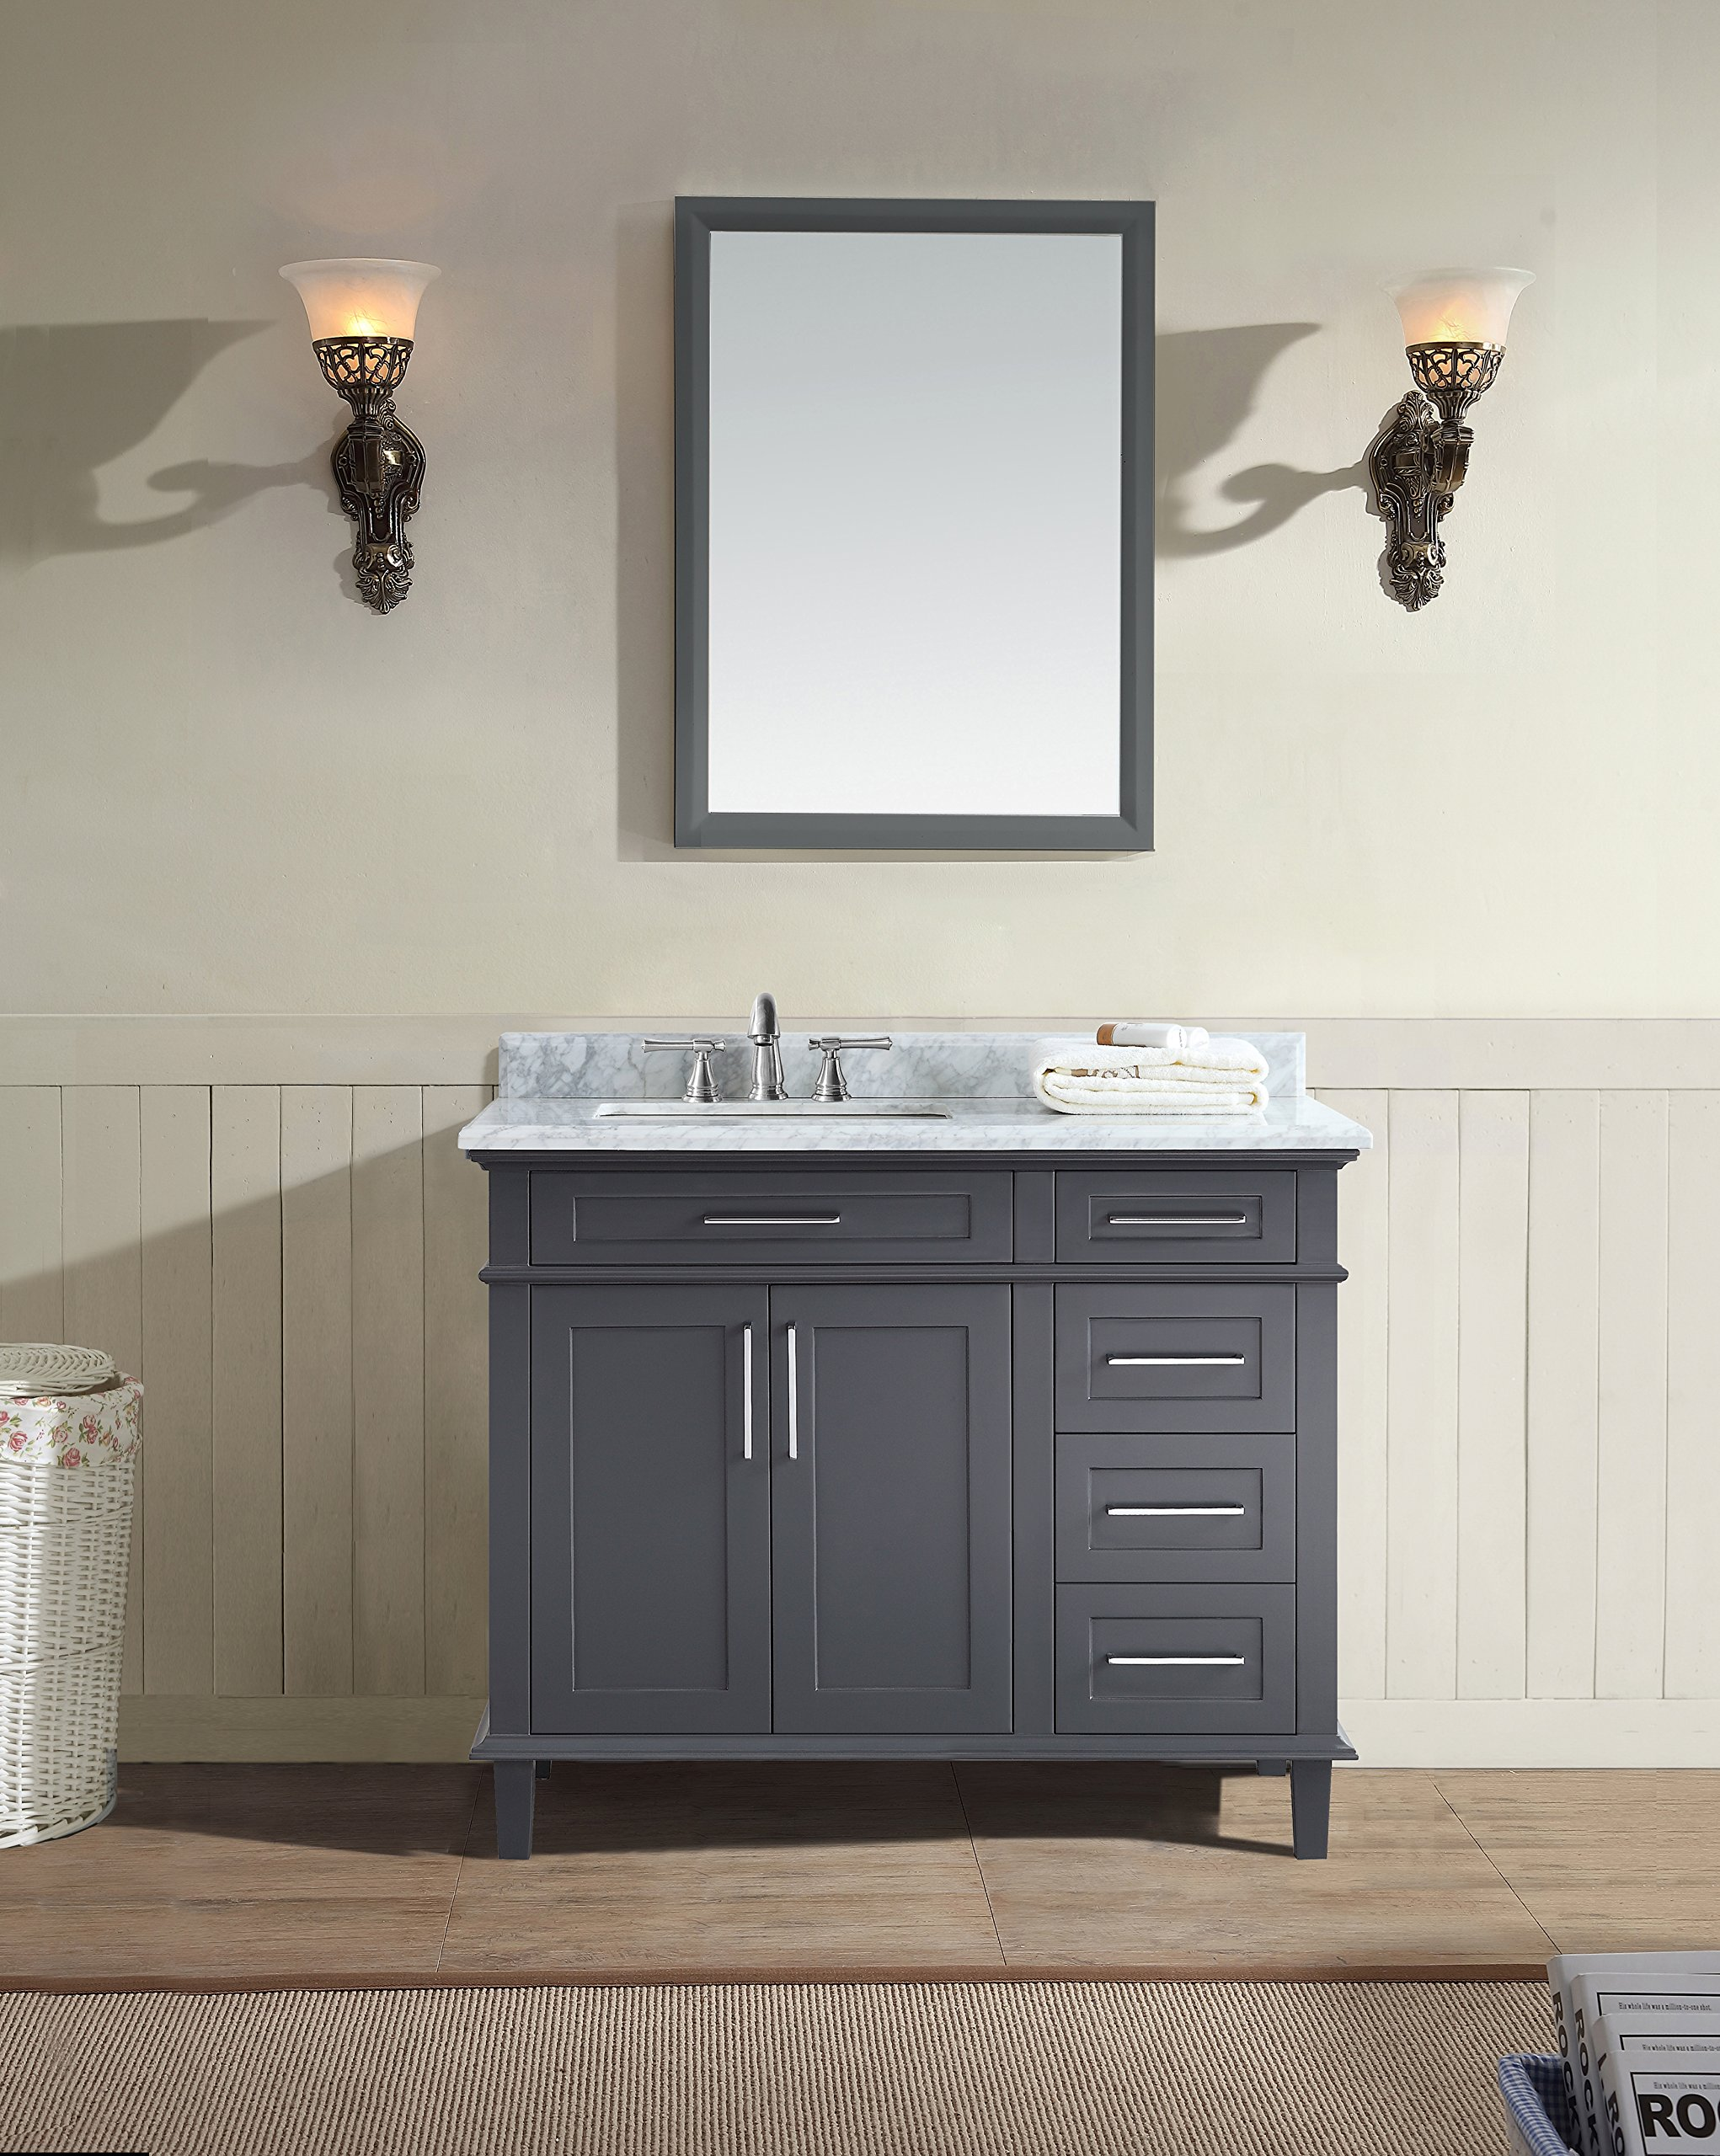 "Ari Kitchen and Bath AKB-NEWPORT-42-CHAR Newport Bathroom Vanity Charcoal Gray, 42"" W x 22"" D x 34.5"" H - Solid hardwood Construction Handcrafted Furniture - tenon and mortise Construction to lasts a lifetime. Full extension soft-closing drawers and doors - bathroom-vanities, bathroom-fixtures-hardware, bathroom - 91ZcVj7TQqL -"